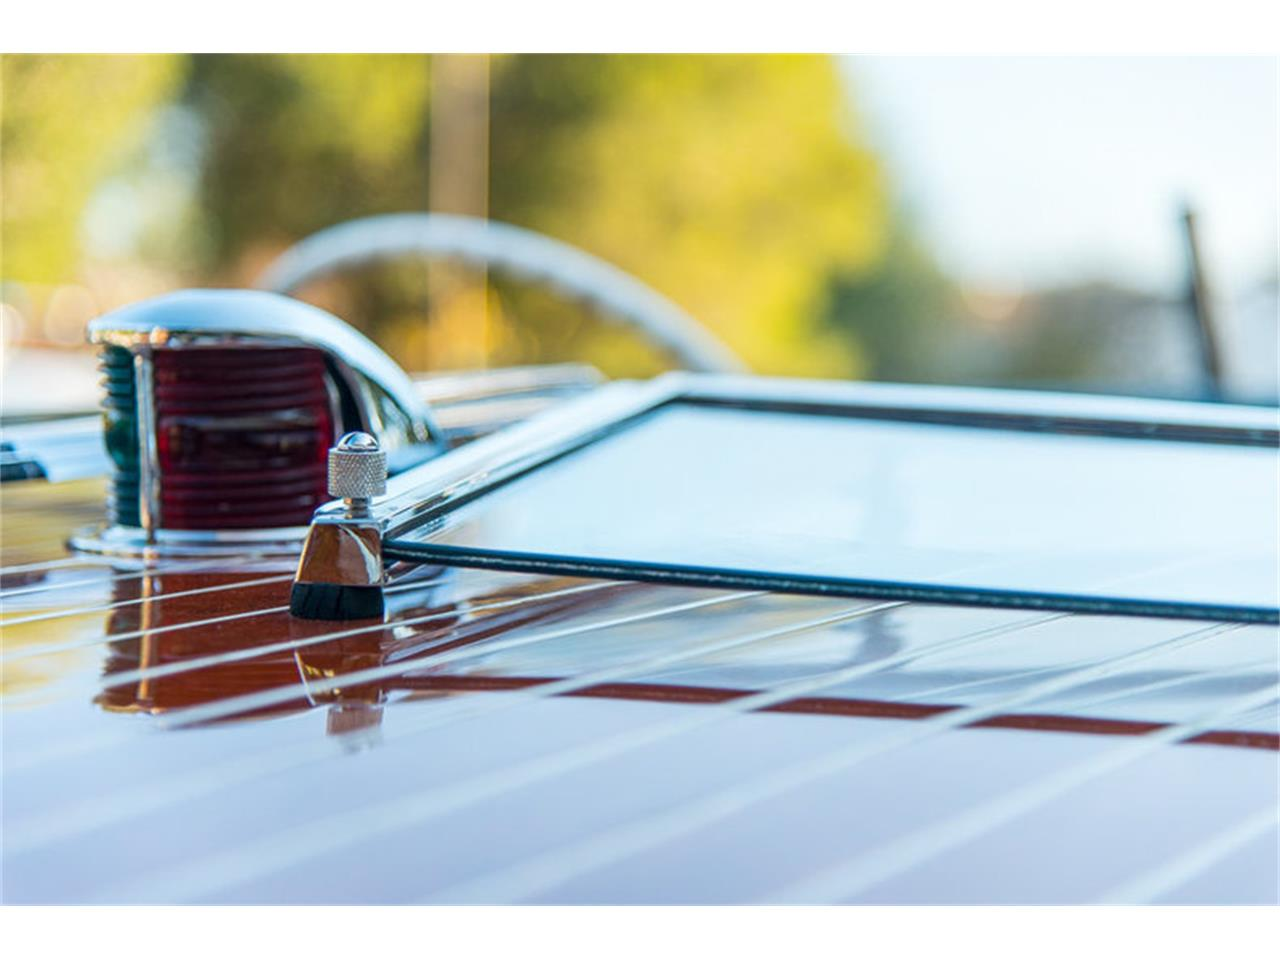 Large Picture of Classic 1941 Chris Craft Custom Runabout located in California Auction Vehicle Offered by Canepa - GQA5